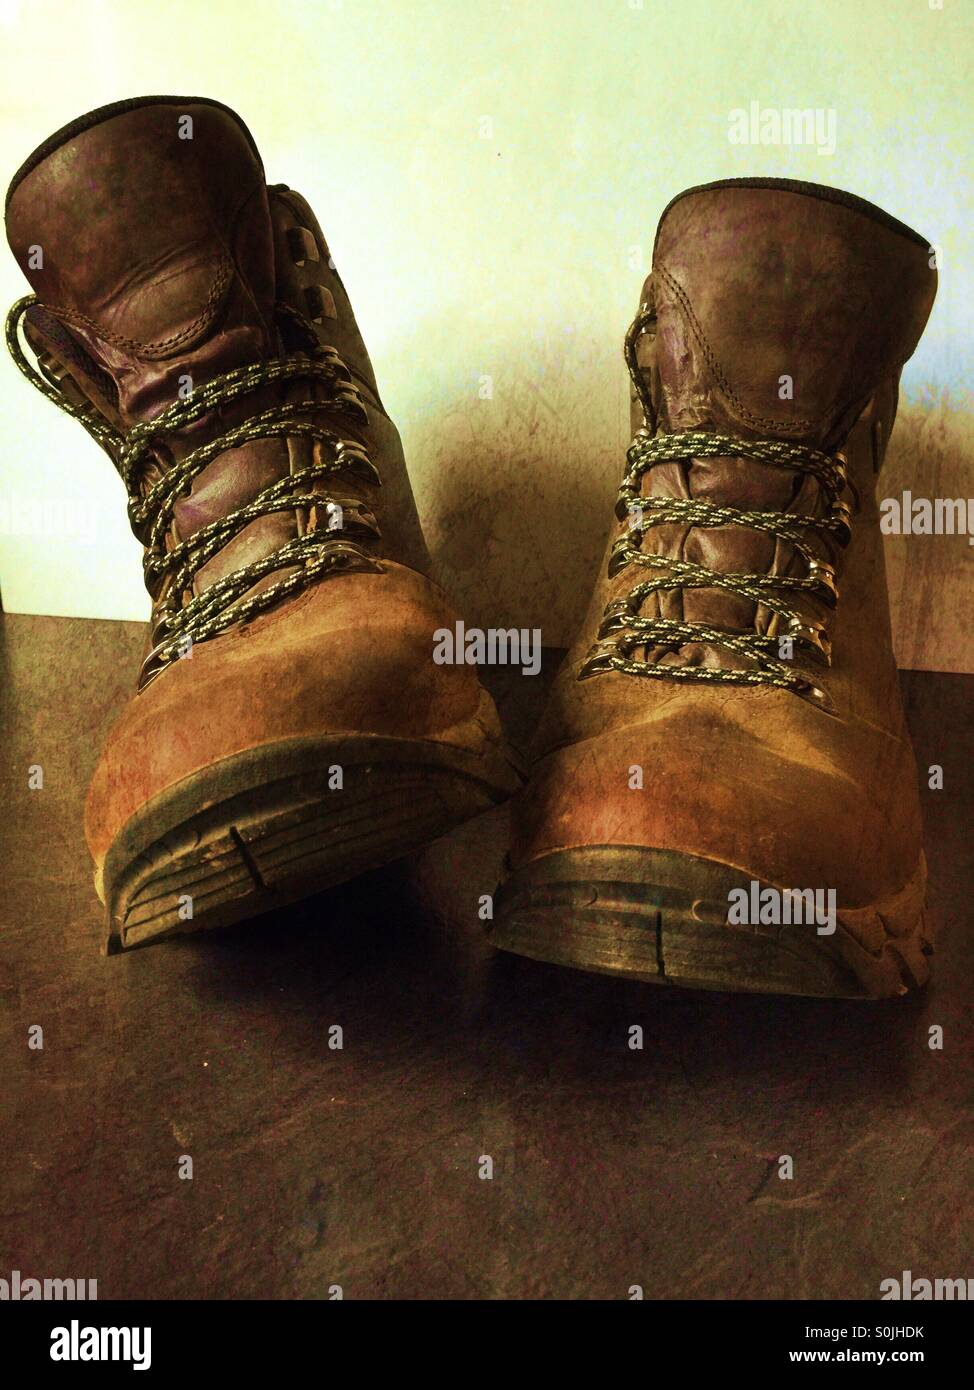 These boots are made for walking - Stock Image